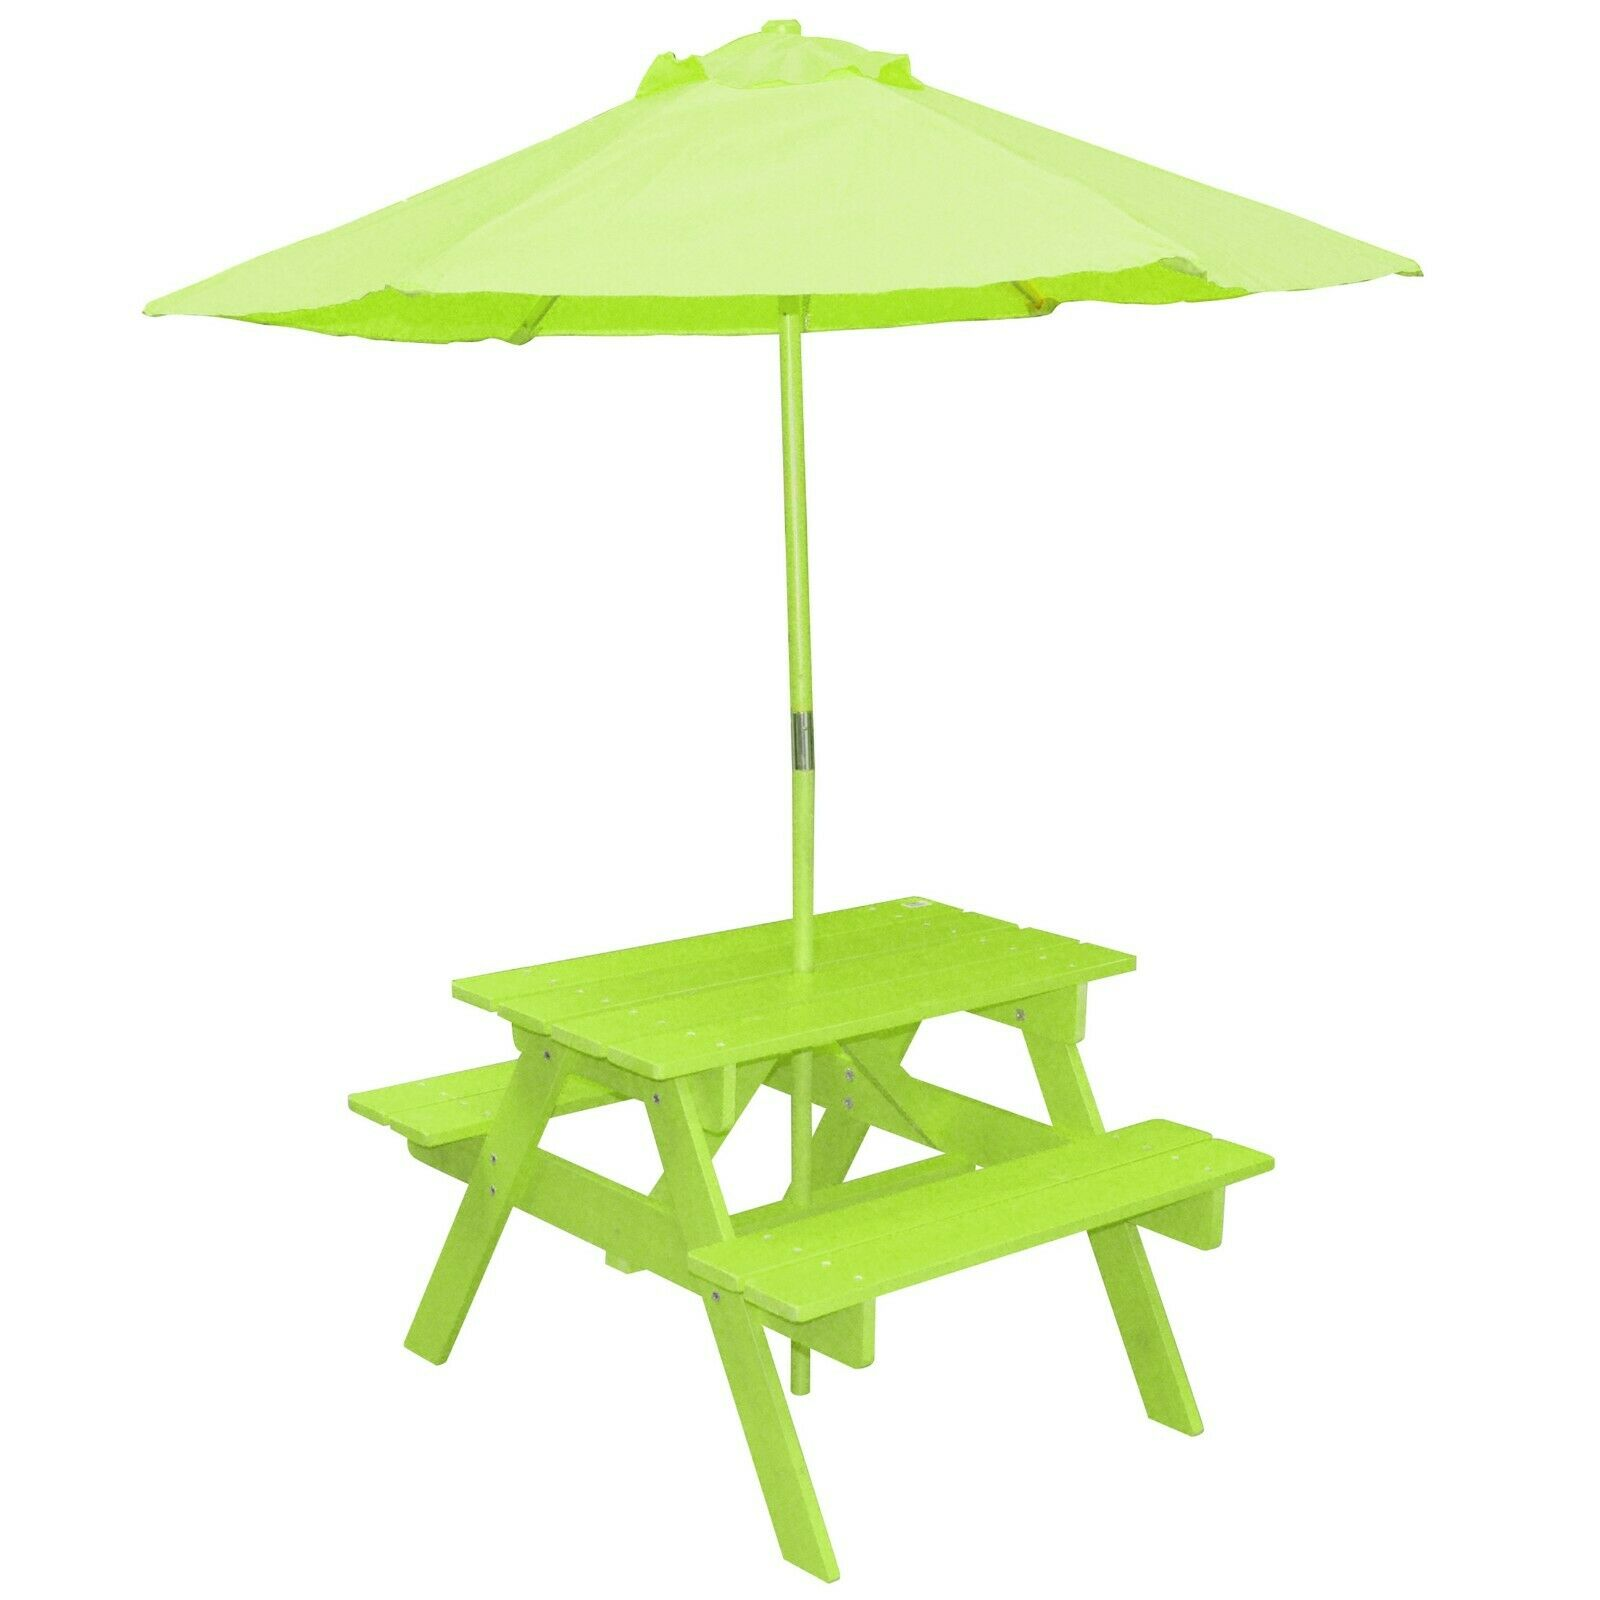 salon table de jardin parasol enfant bois deco chambre insolite camping 604 eur 55 90. Black Bedroom Furniture Sets. Home Design Ideas